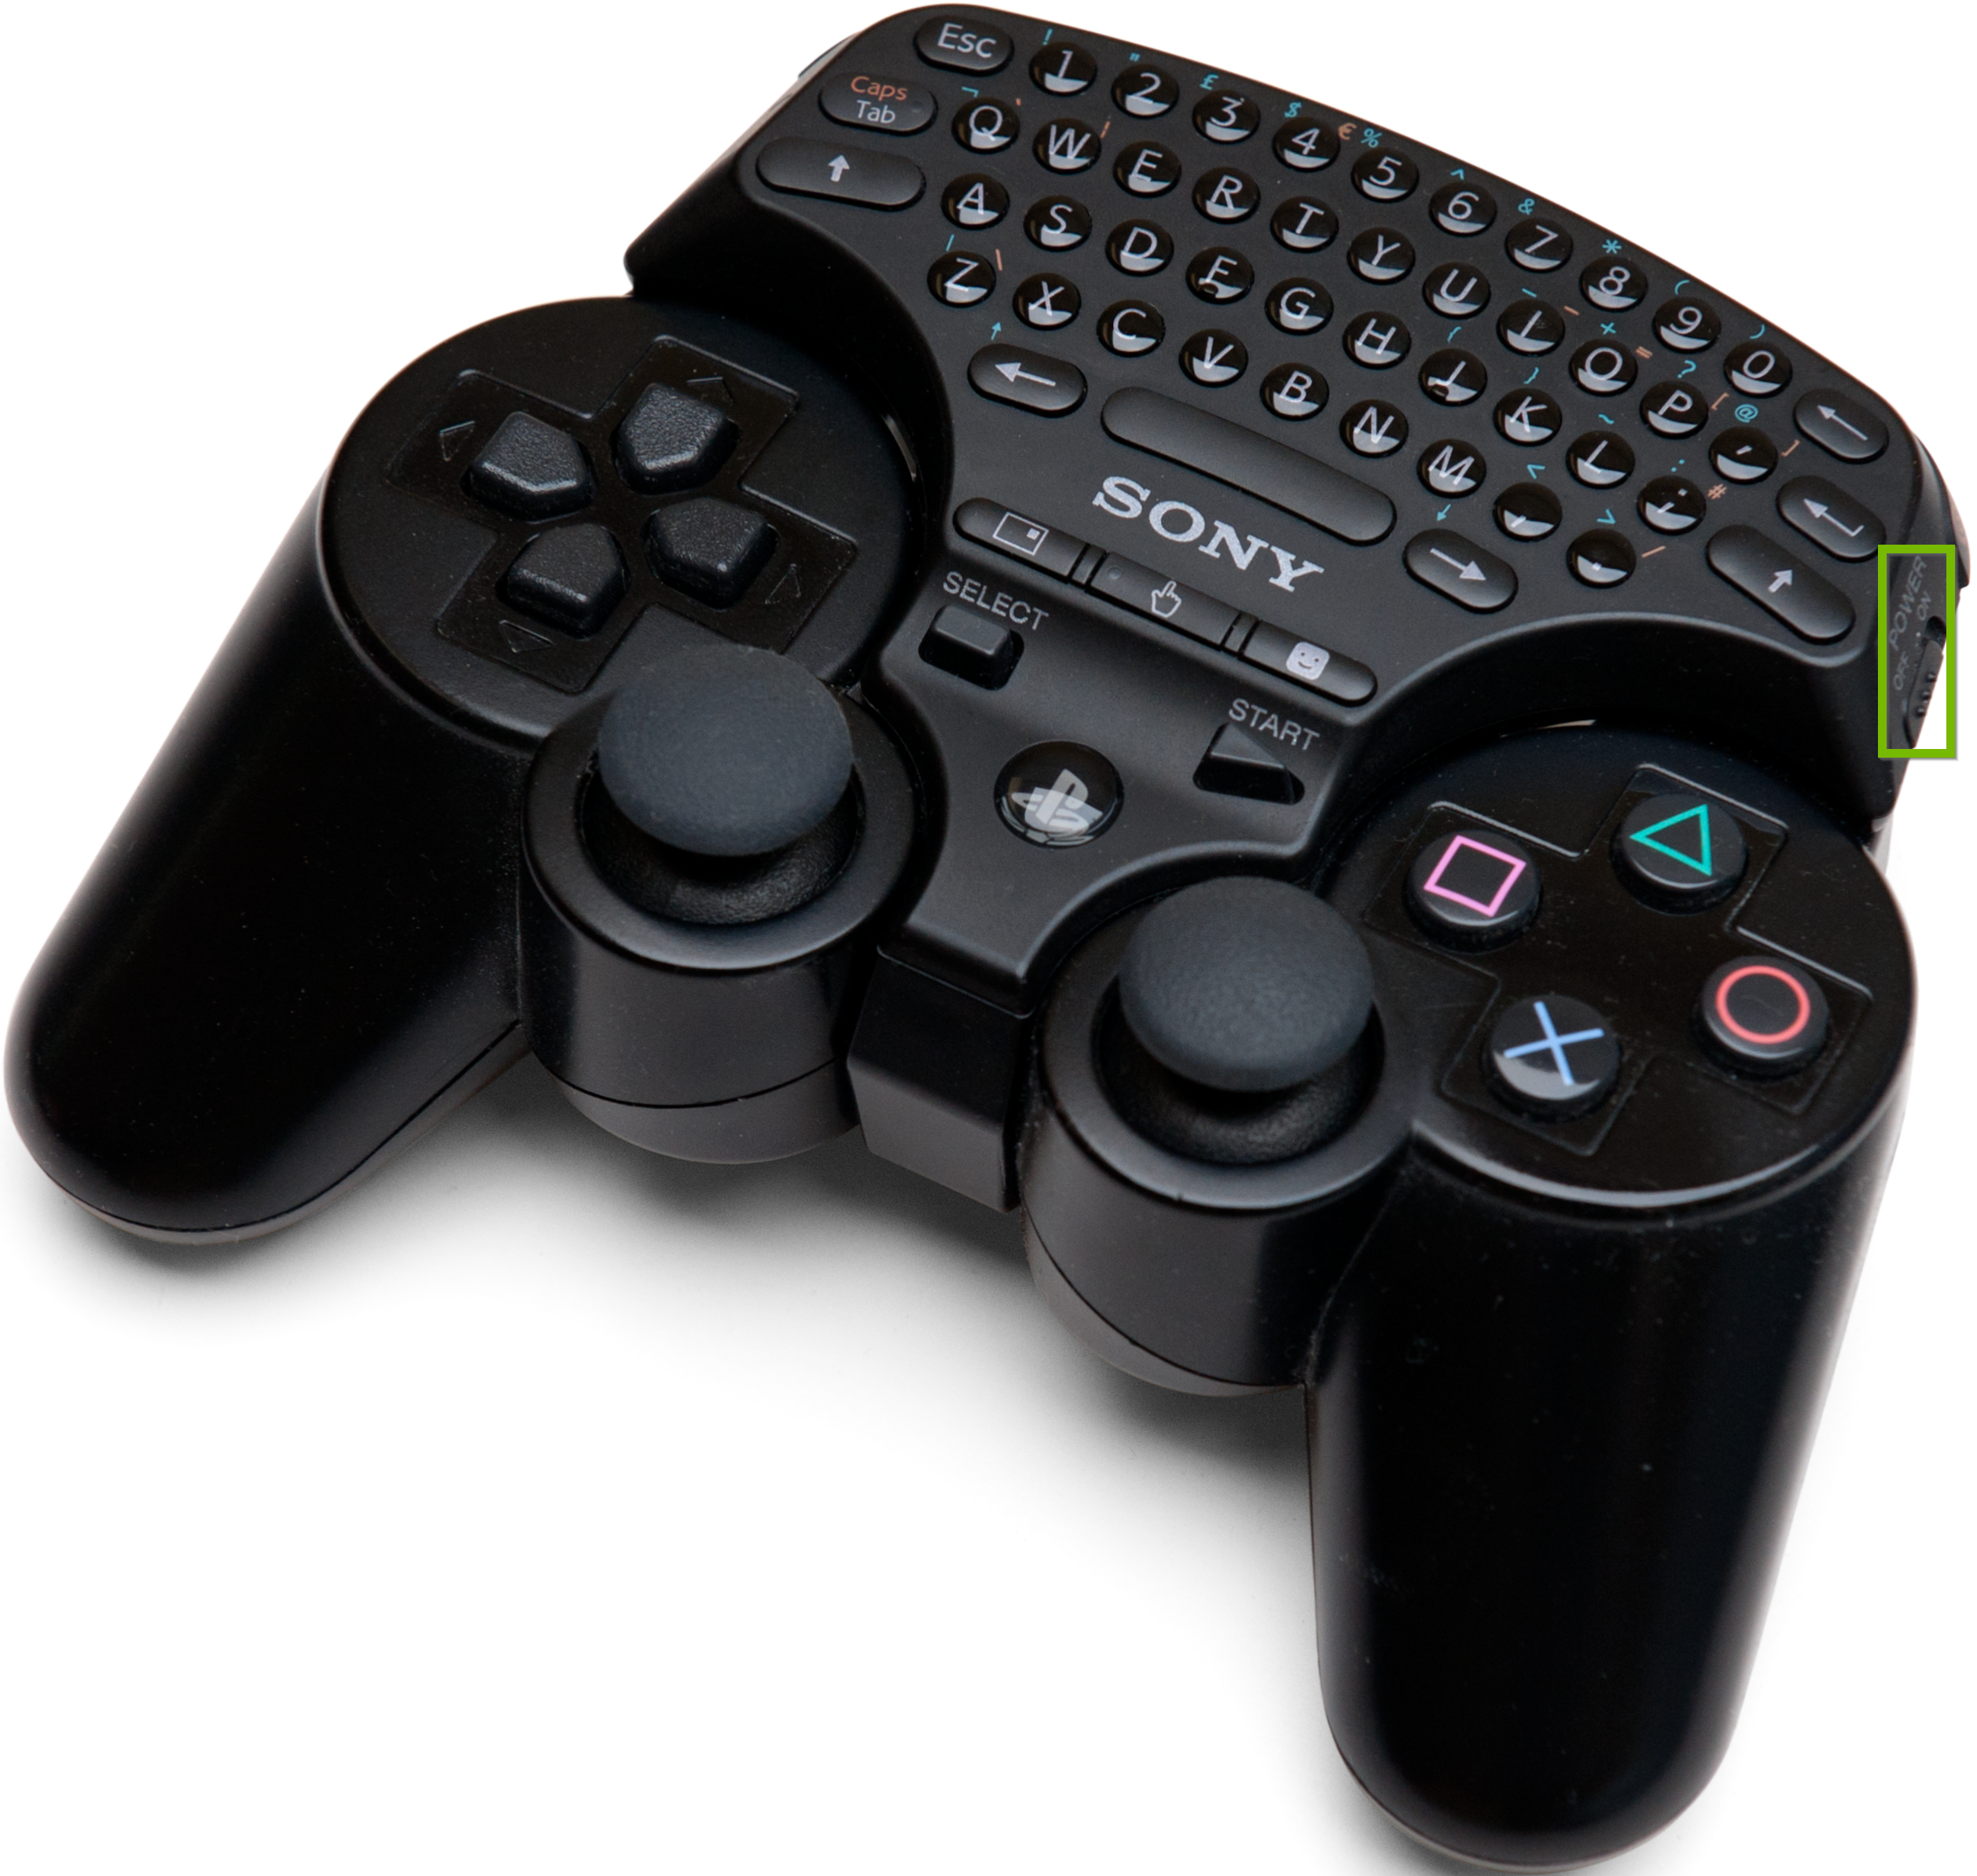 Keypad connected to PS3 controller with power switch toggled on.